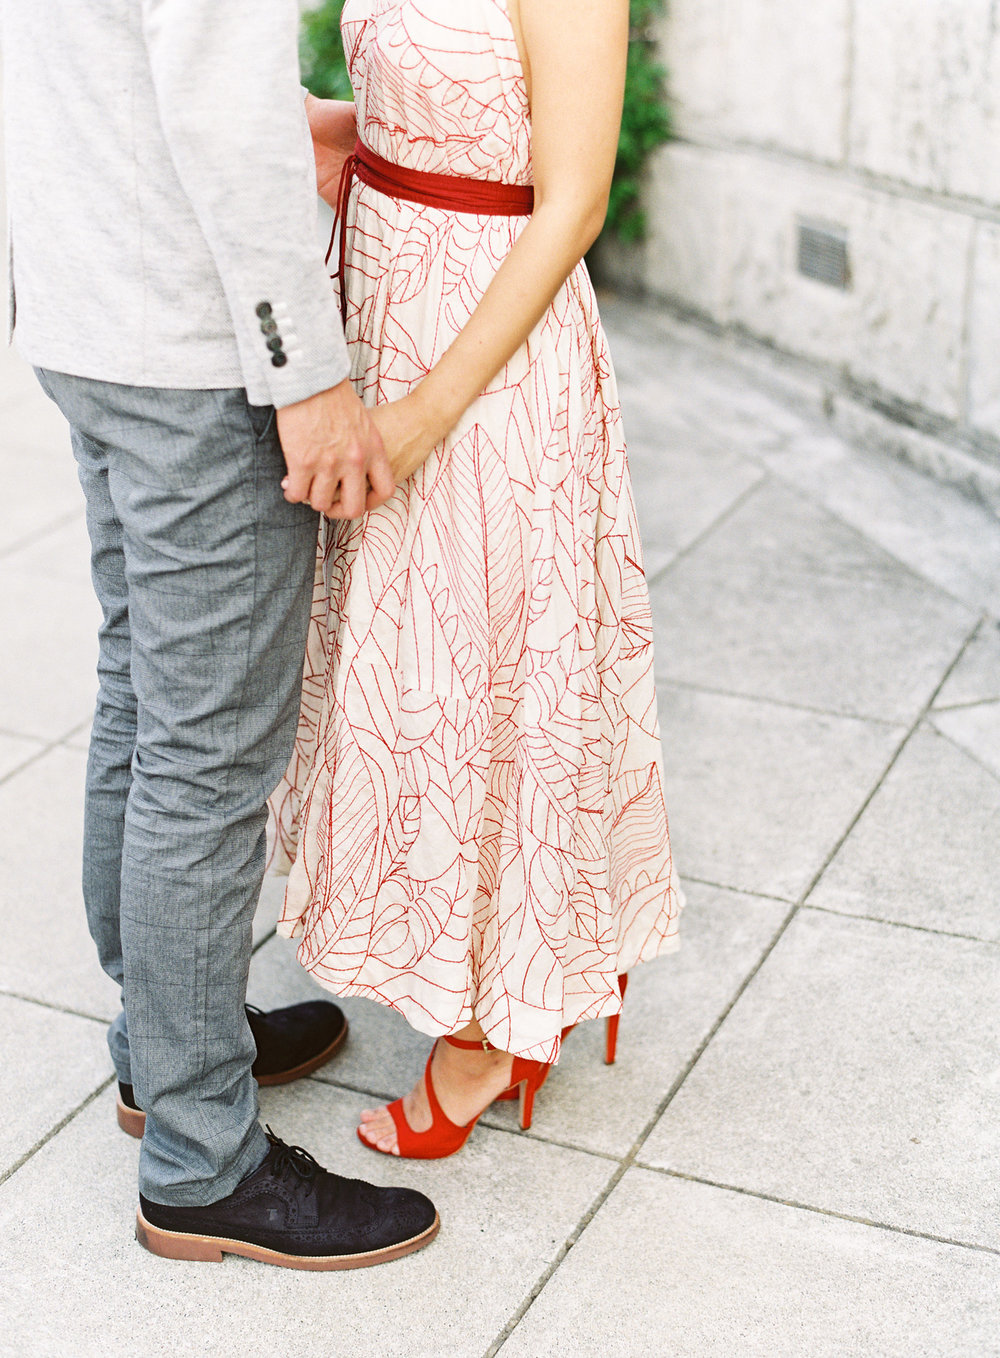 Napa-California-engagement-session-30.jpg